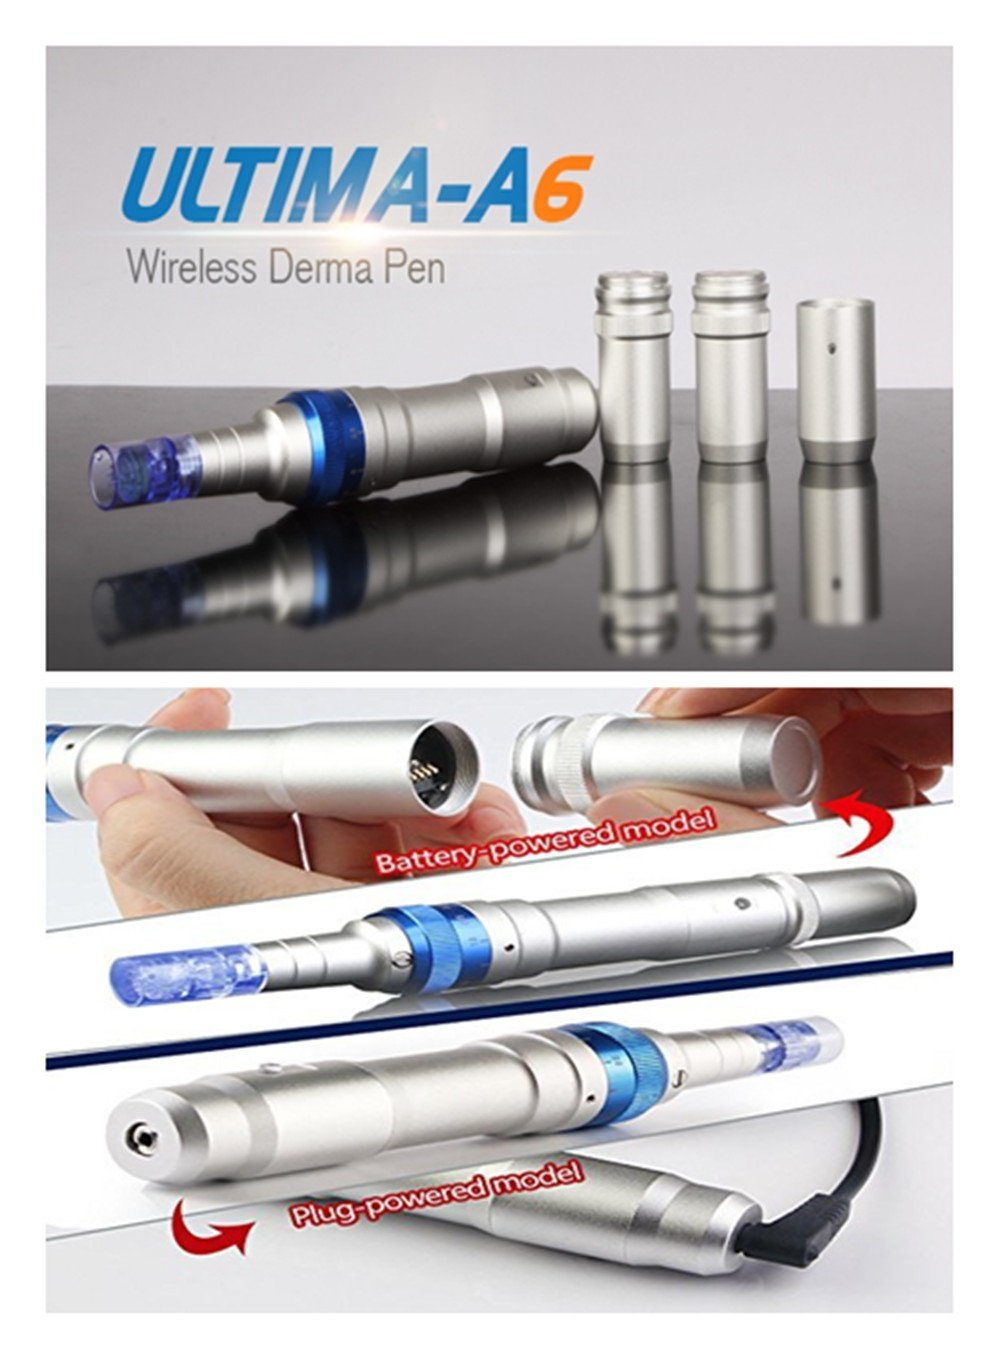 Dr. Pen Ultima A6 Rechargeable Therapy Professional System & Dr Pen A6 Accessories - for Scars, Acne, Wrinkles, Spot Removal, Hydrating, Whitening (2 Batteries+10PCS Cartridges) by Dr. Pen (Image #10)